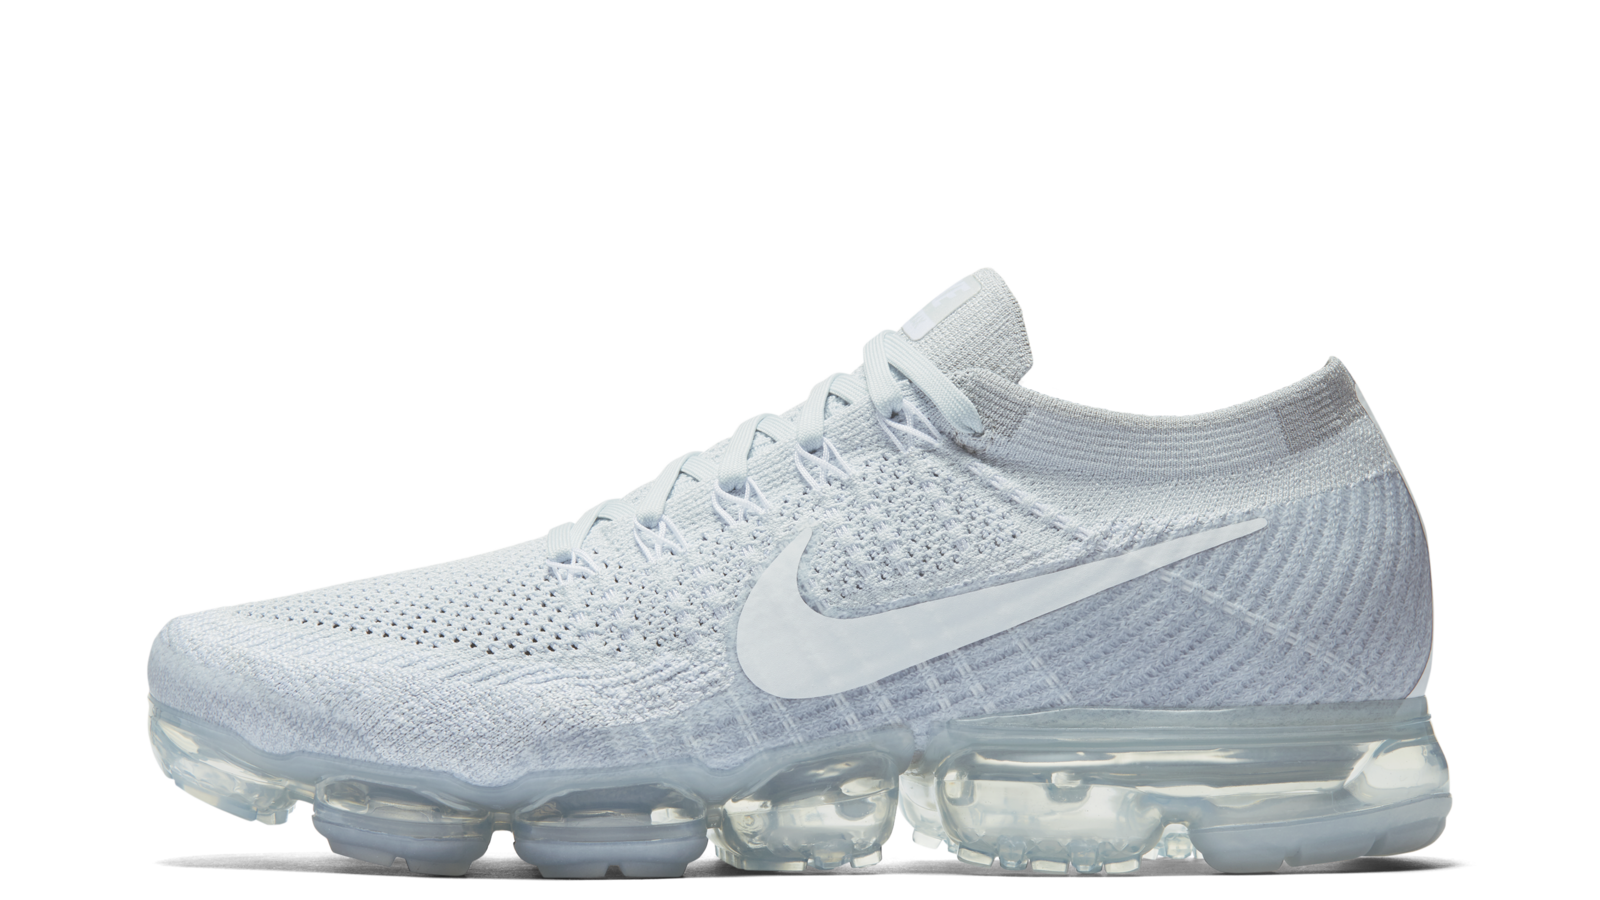 Nike Air VaporMax Reveals the Pinnacle of Air